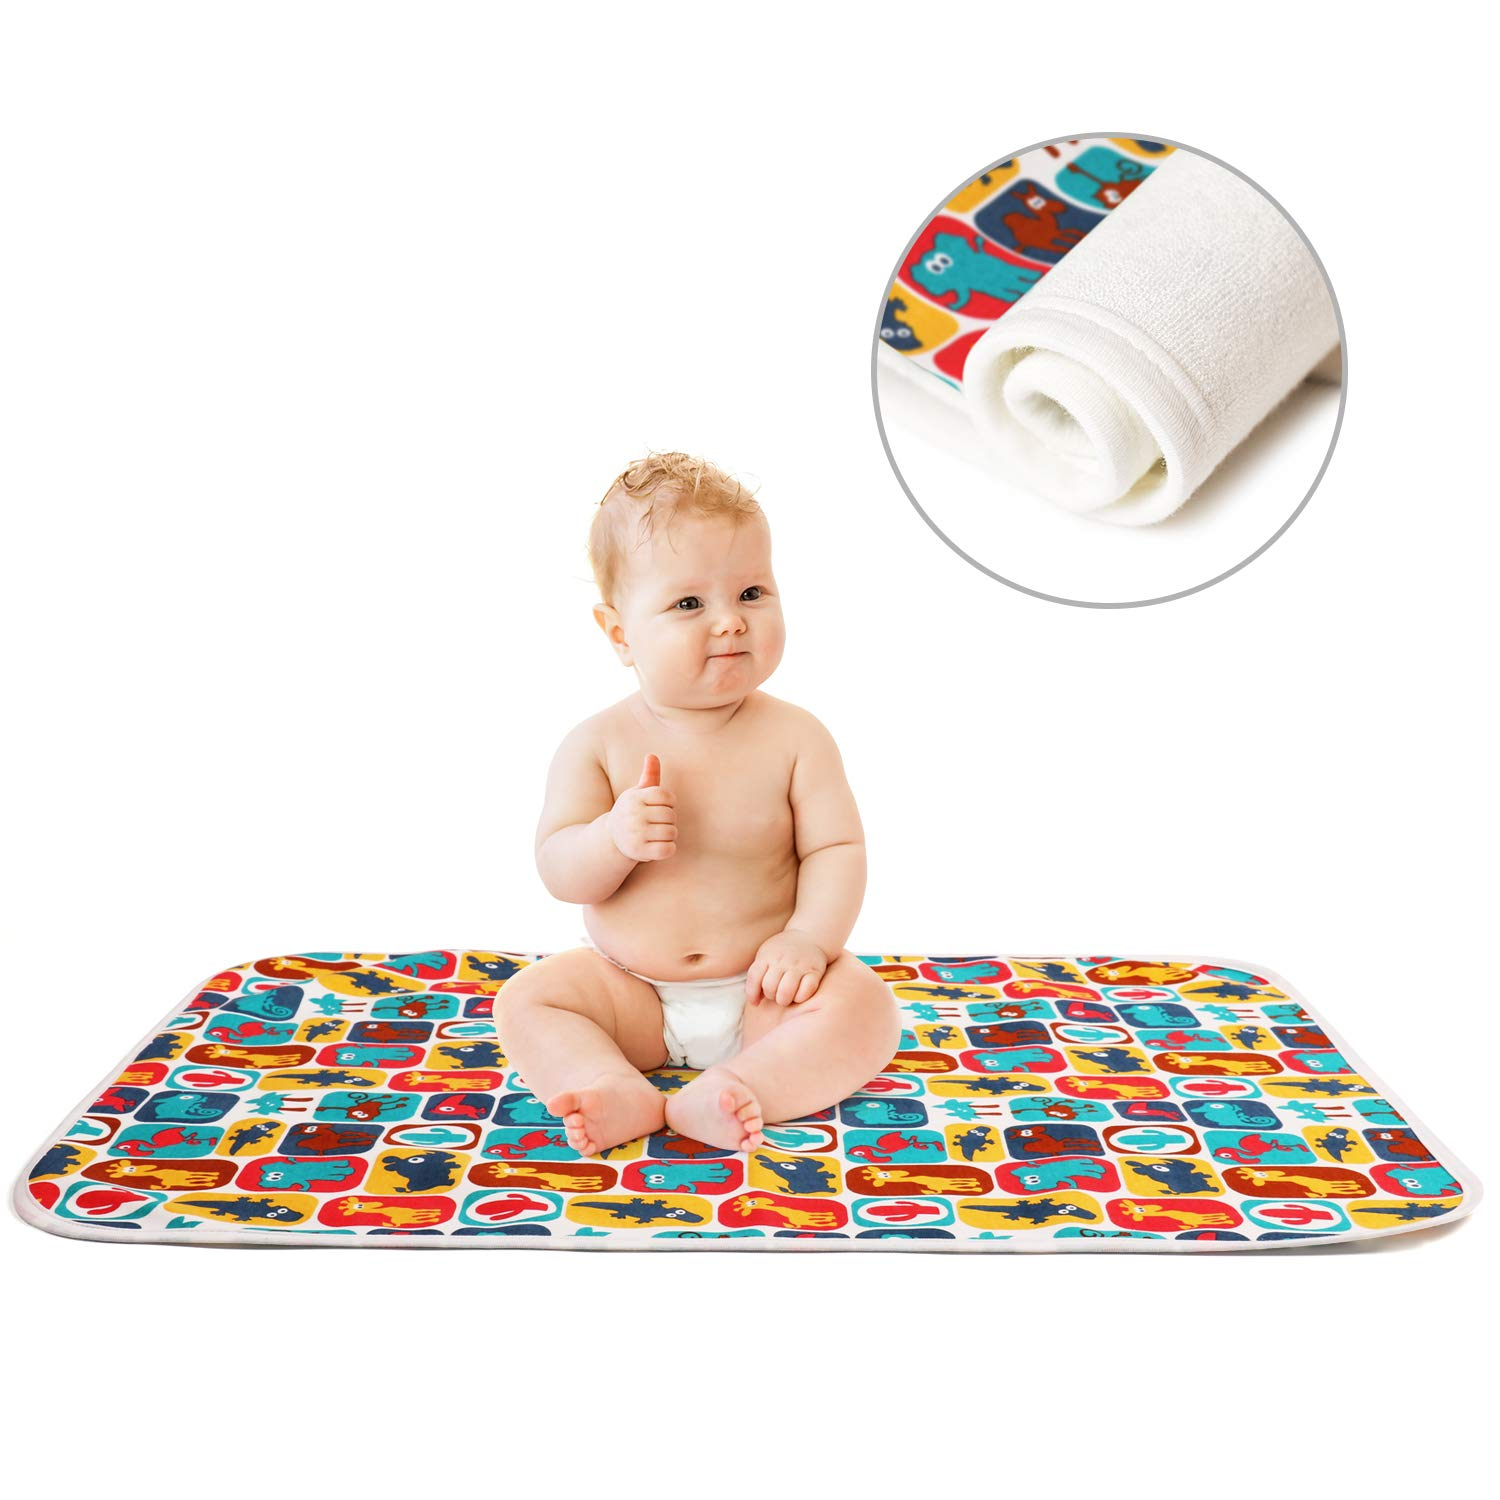 Printed Changing Baby Diaper Pad, Waterproof Pad Baby, Mifiatin Soft Urine Pads Absorbent Blanket Sheet Bed Pads Washable Mattress Change Mat Incontinence Pads for Infant and Adults-Dinosaur(70x100cm)